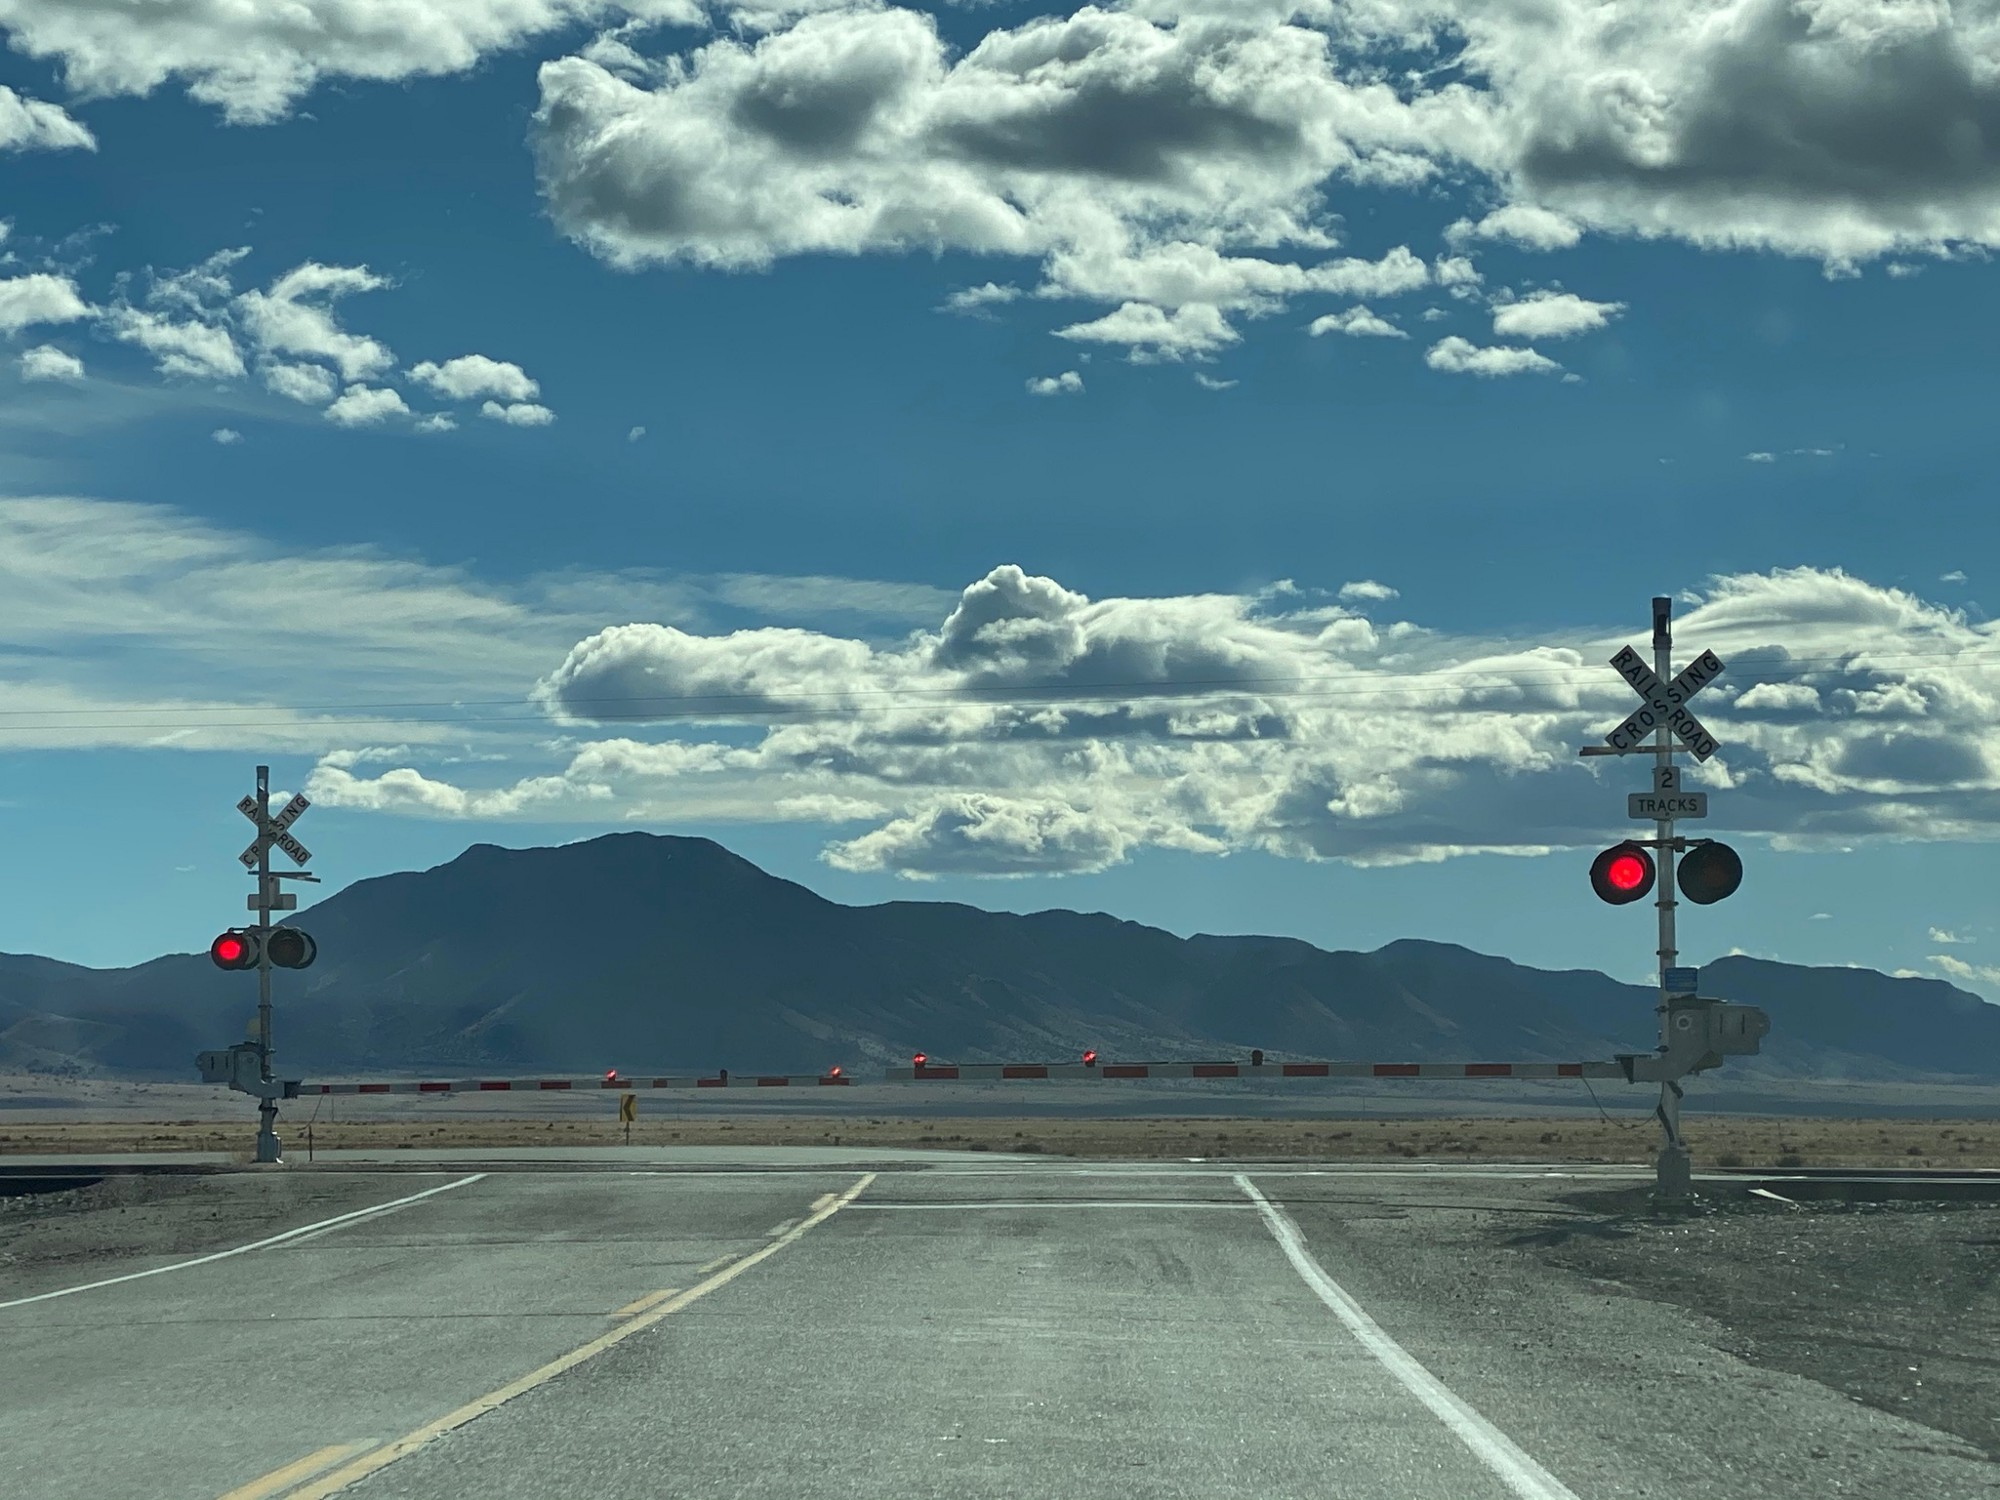 The view toward the south of a railroad crossing where NM 47 intersects with US 60 south of Belen, New Mexico